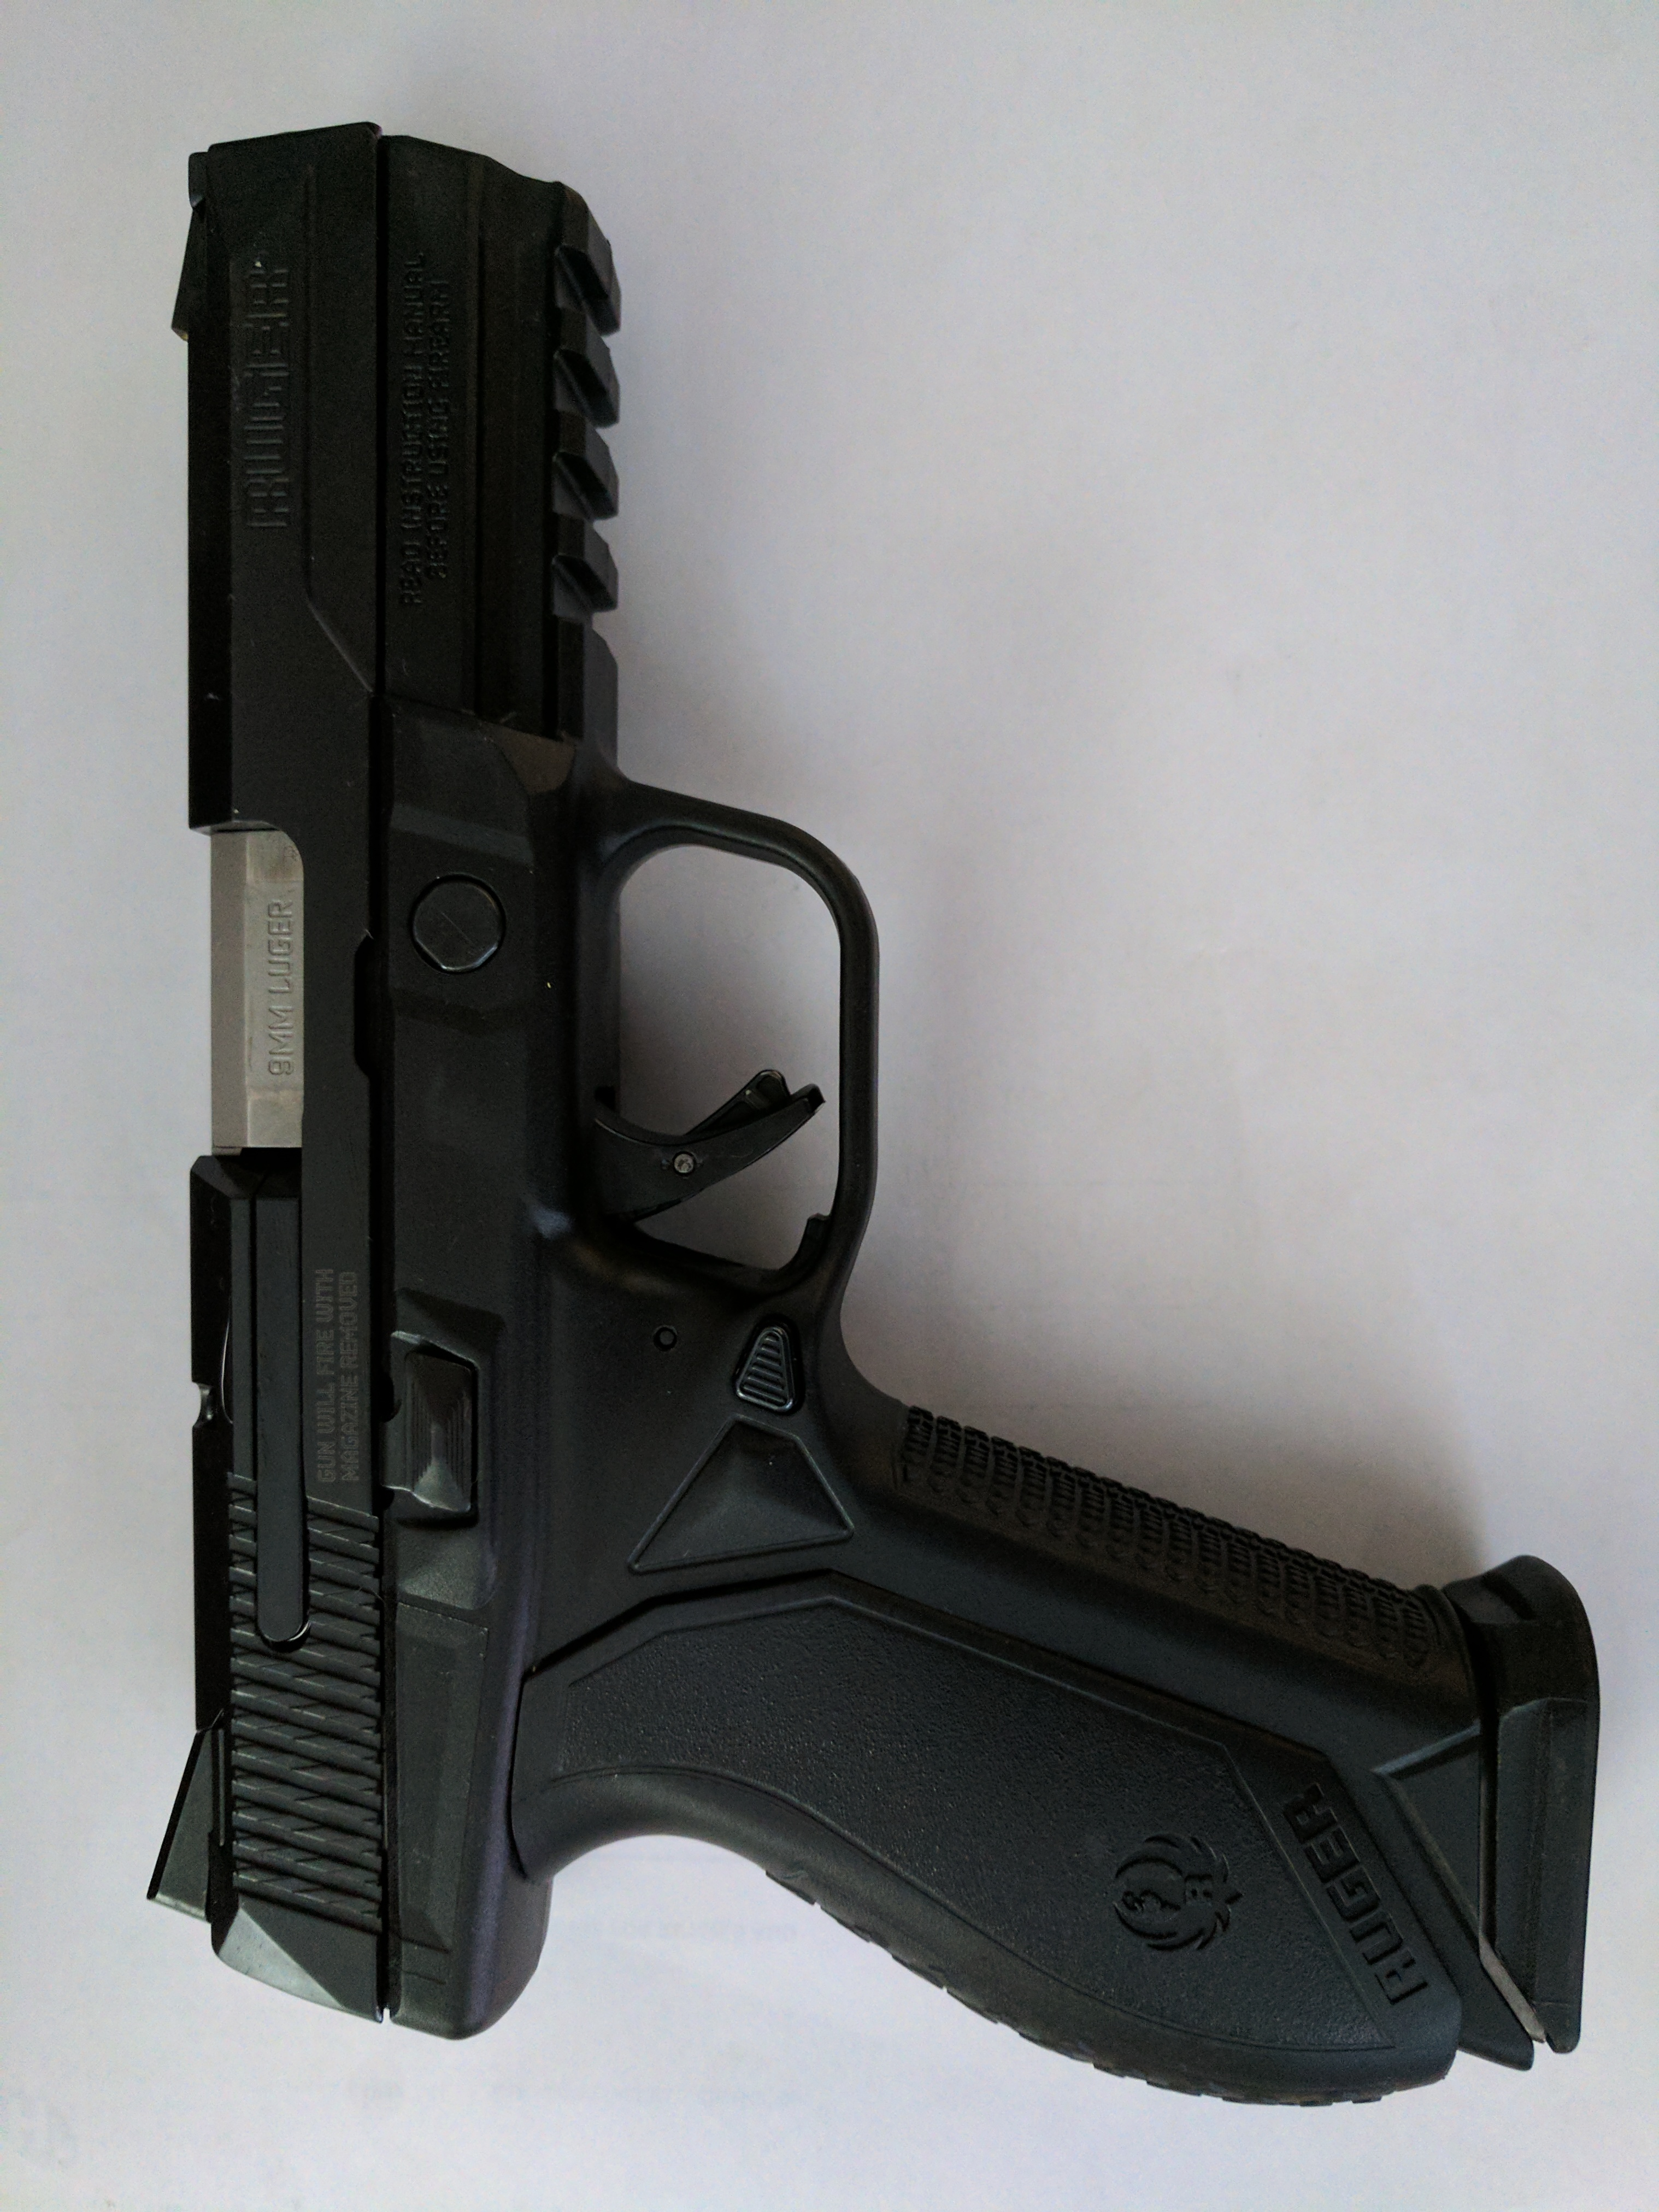 Ruger American Pistol - Wikipedia